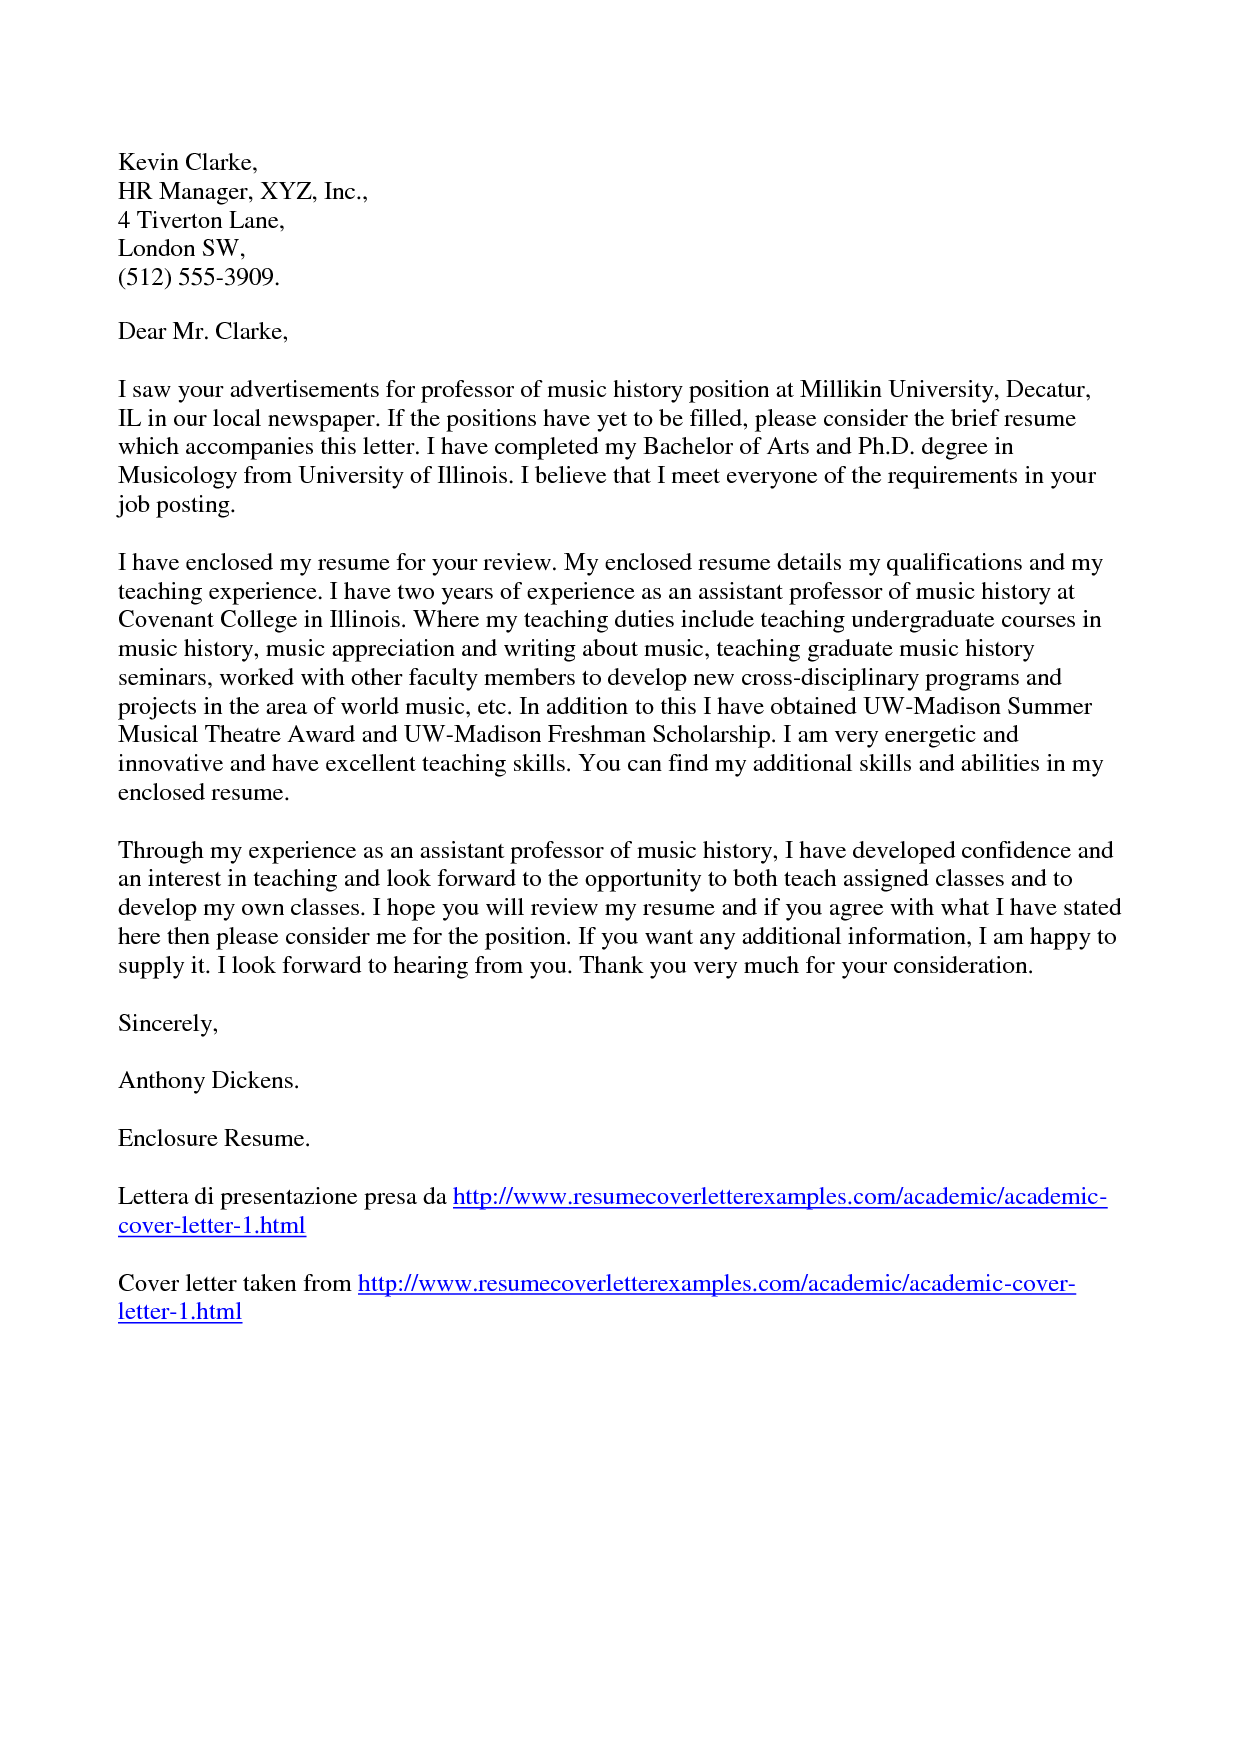 writing cover letter for a postdoctoral position - Cover Letter University